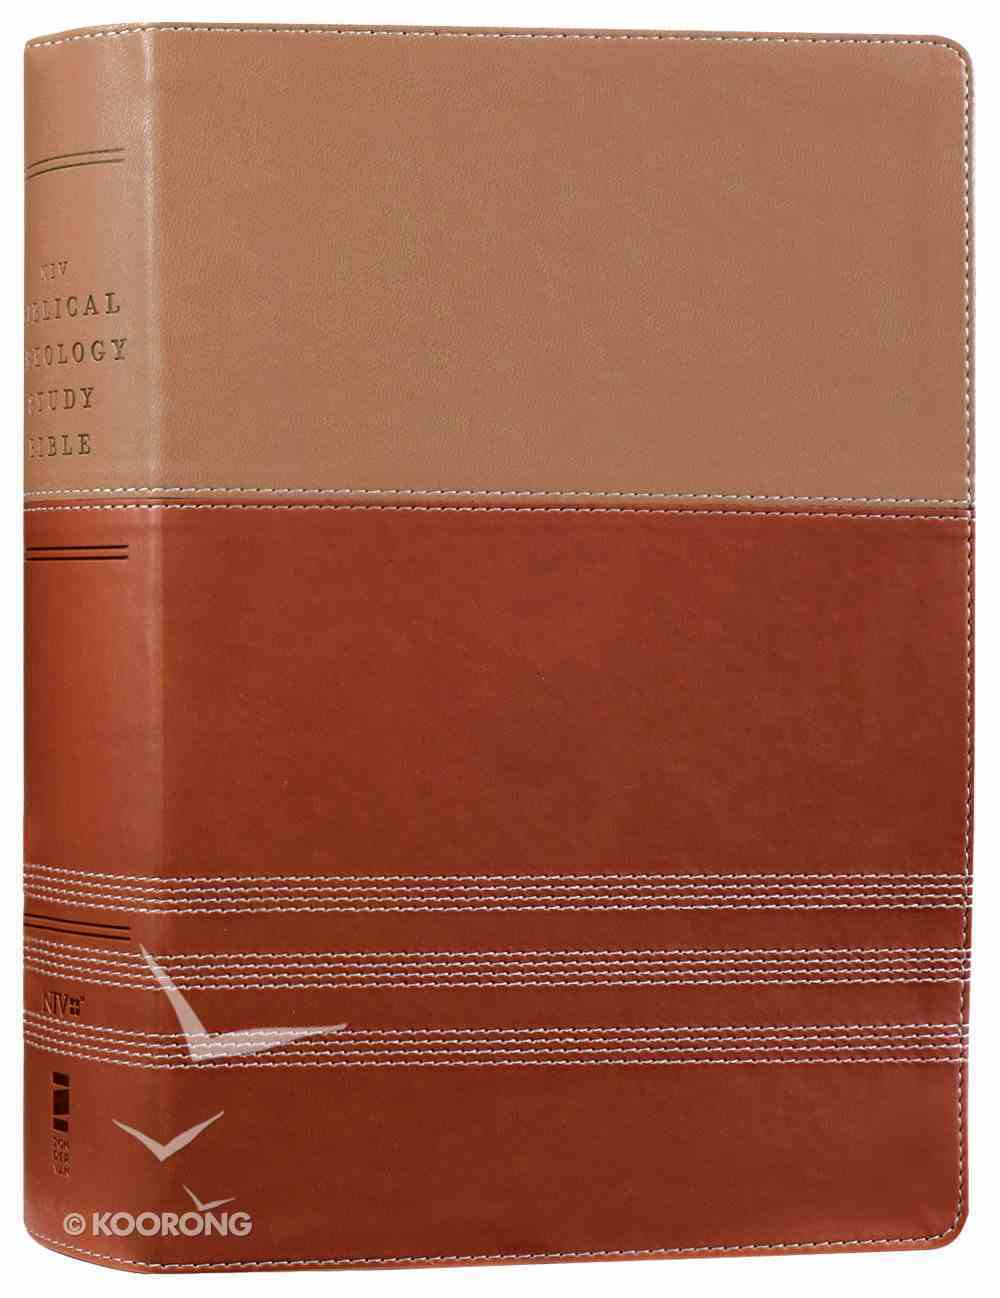 NIV Biblical Theology Study Bible Tan/Brown (Black Letter Edition) Premium Imitation Leather